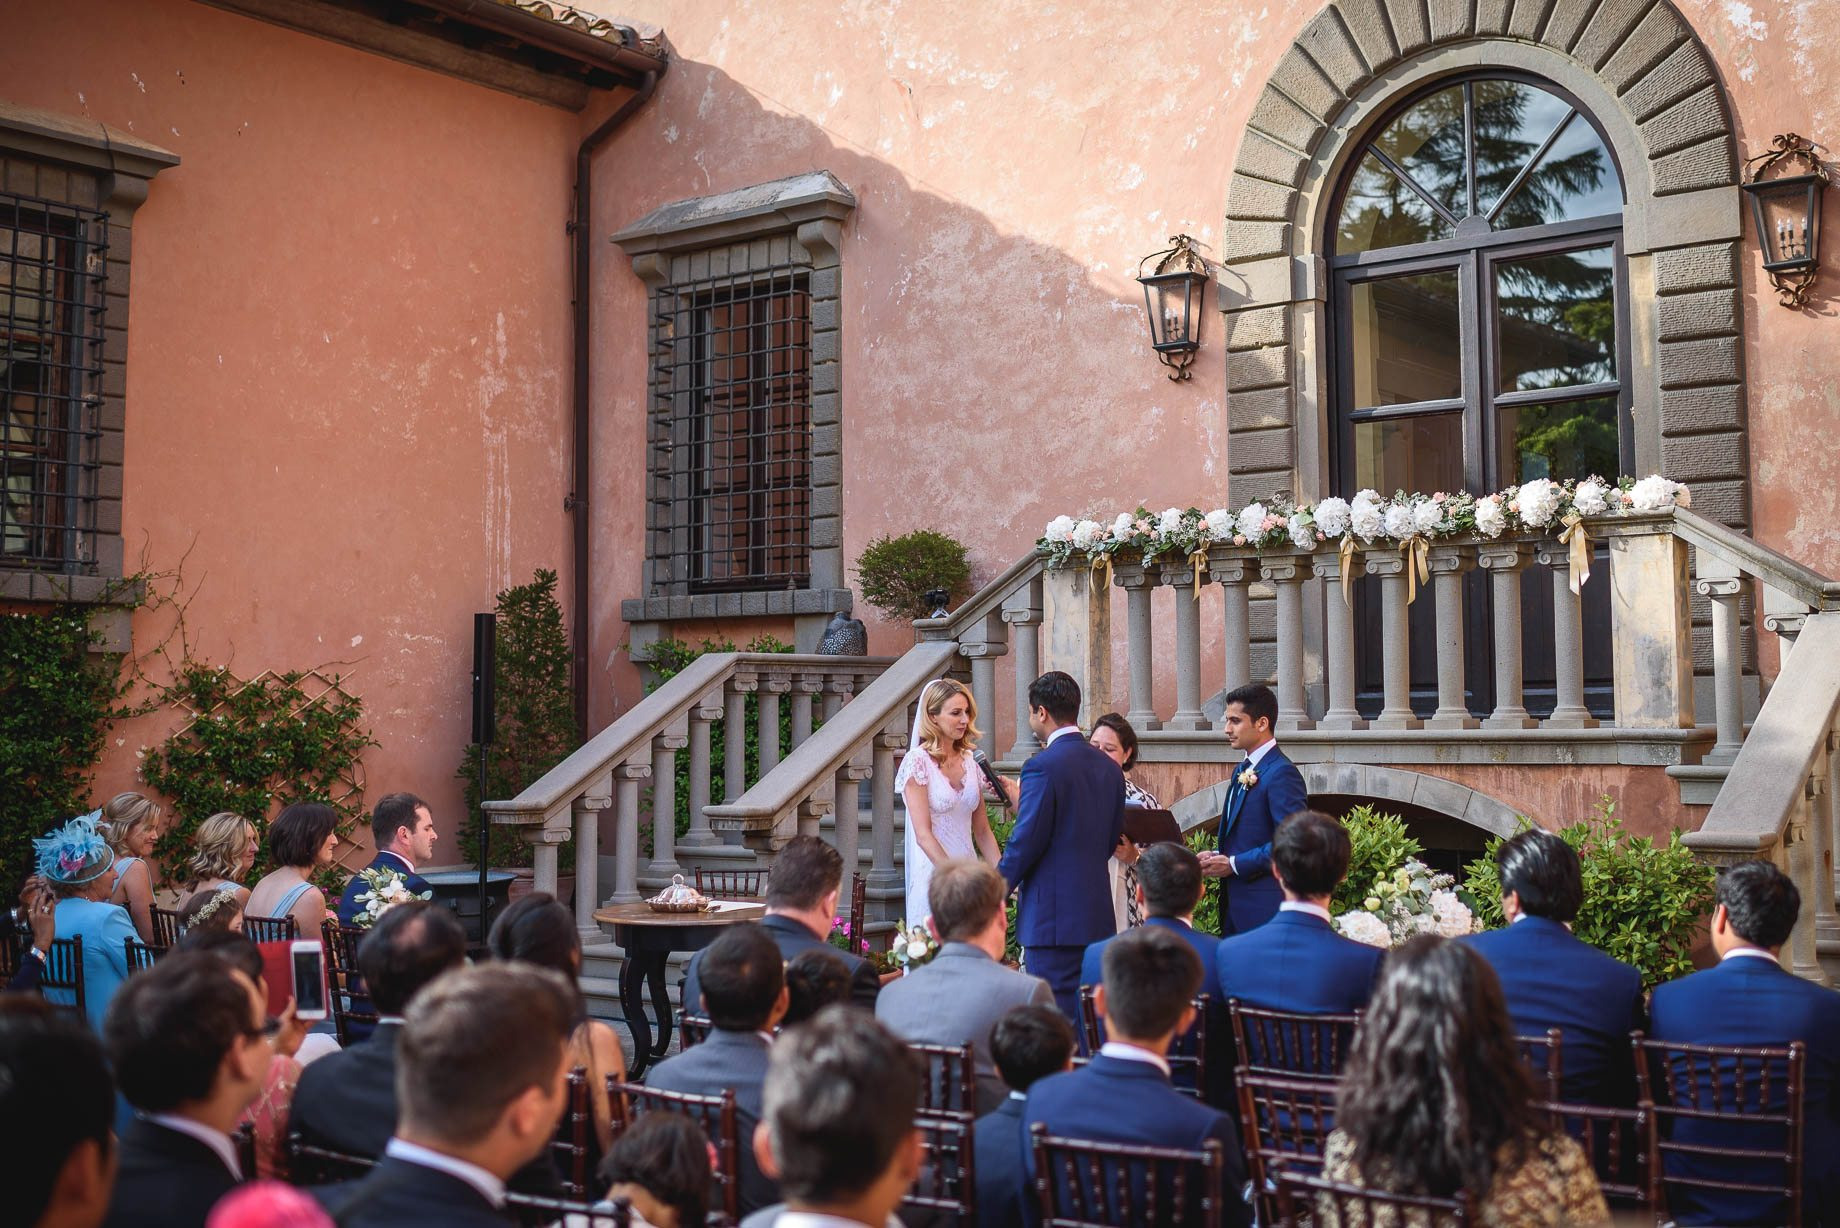 Tuscany wedding photography - Roisin and Moubin - Guy Collier Photography (110 of 251)